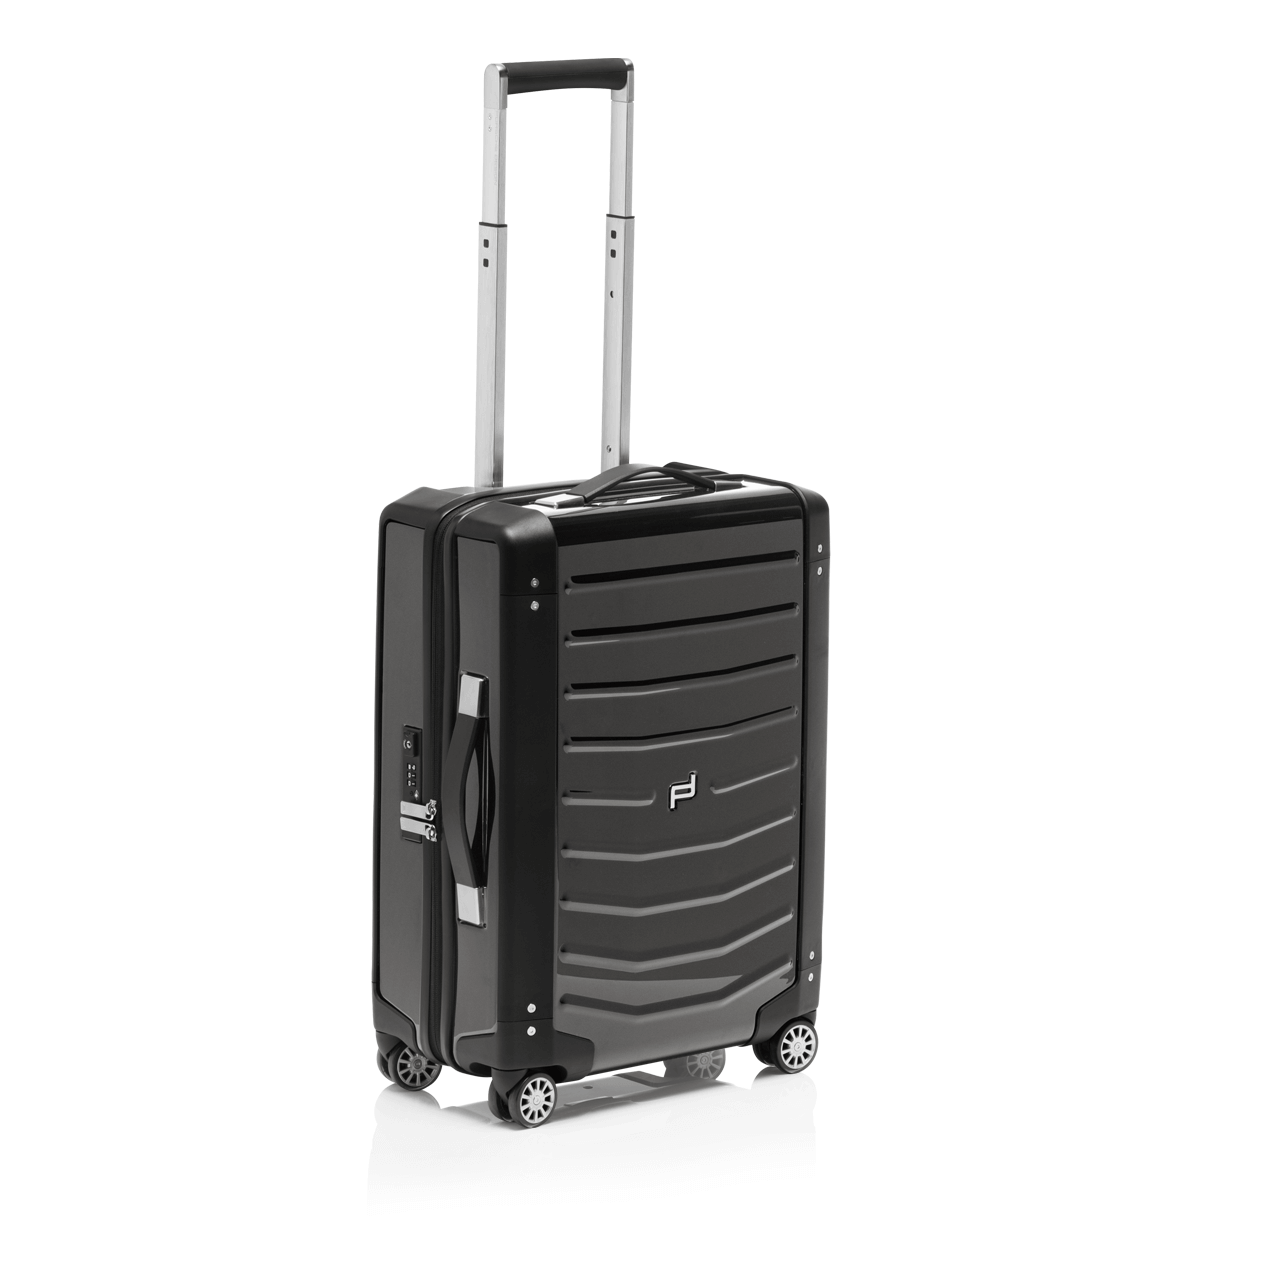 ROADSTER HARDCASE TROLLEY S - фото 1